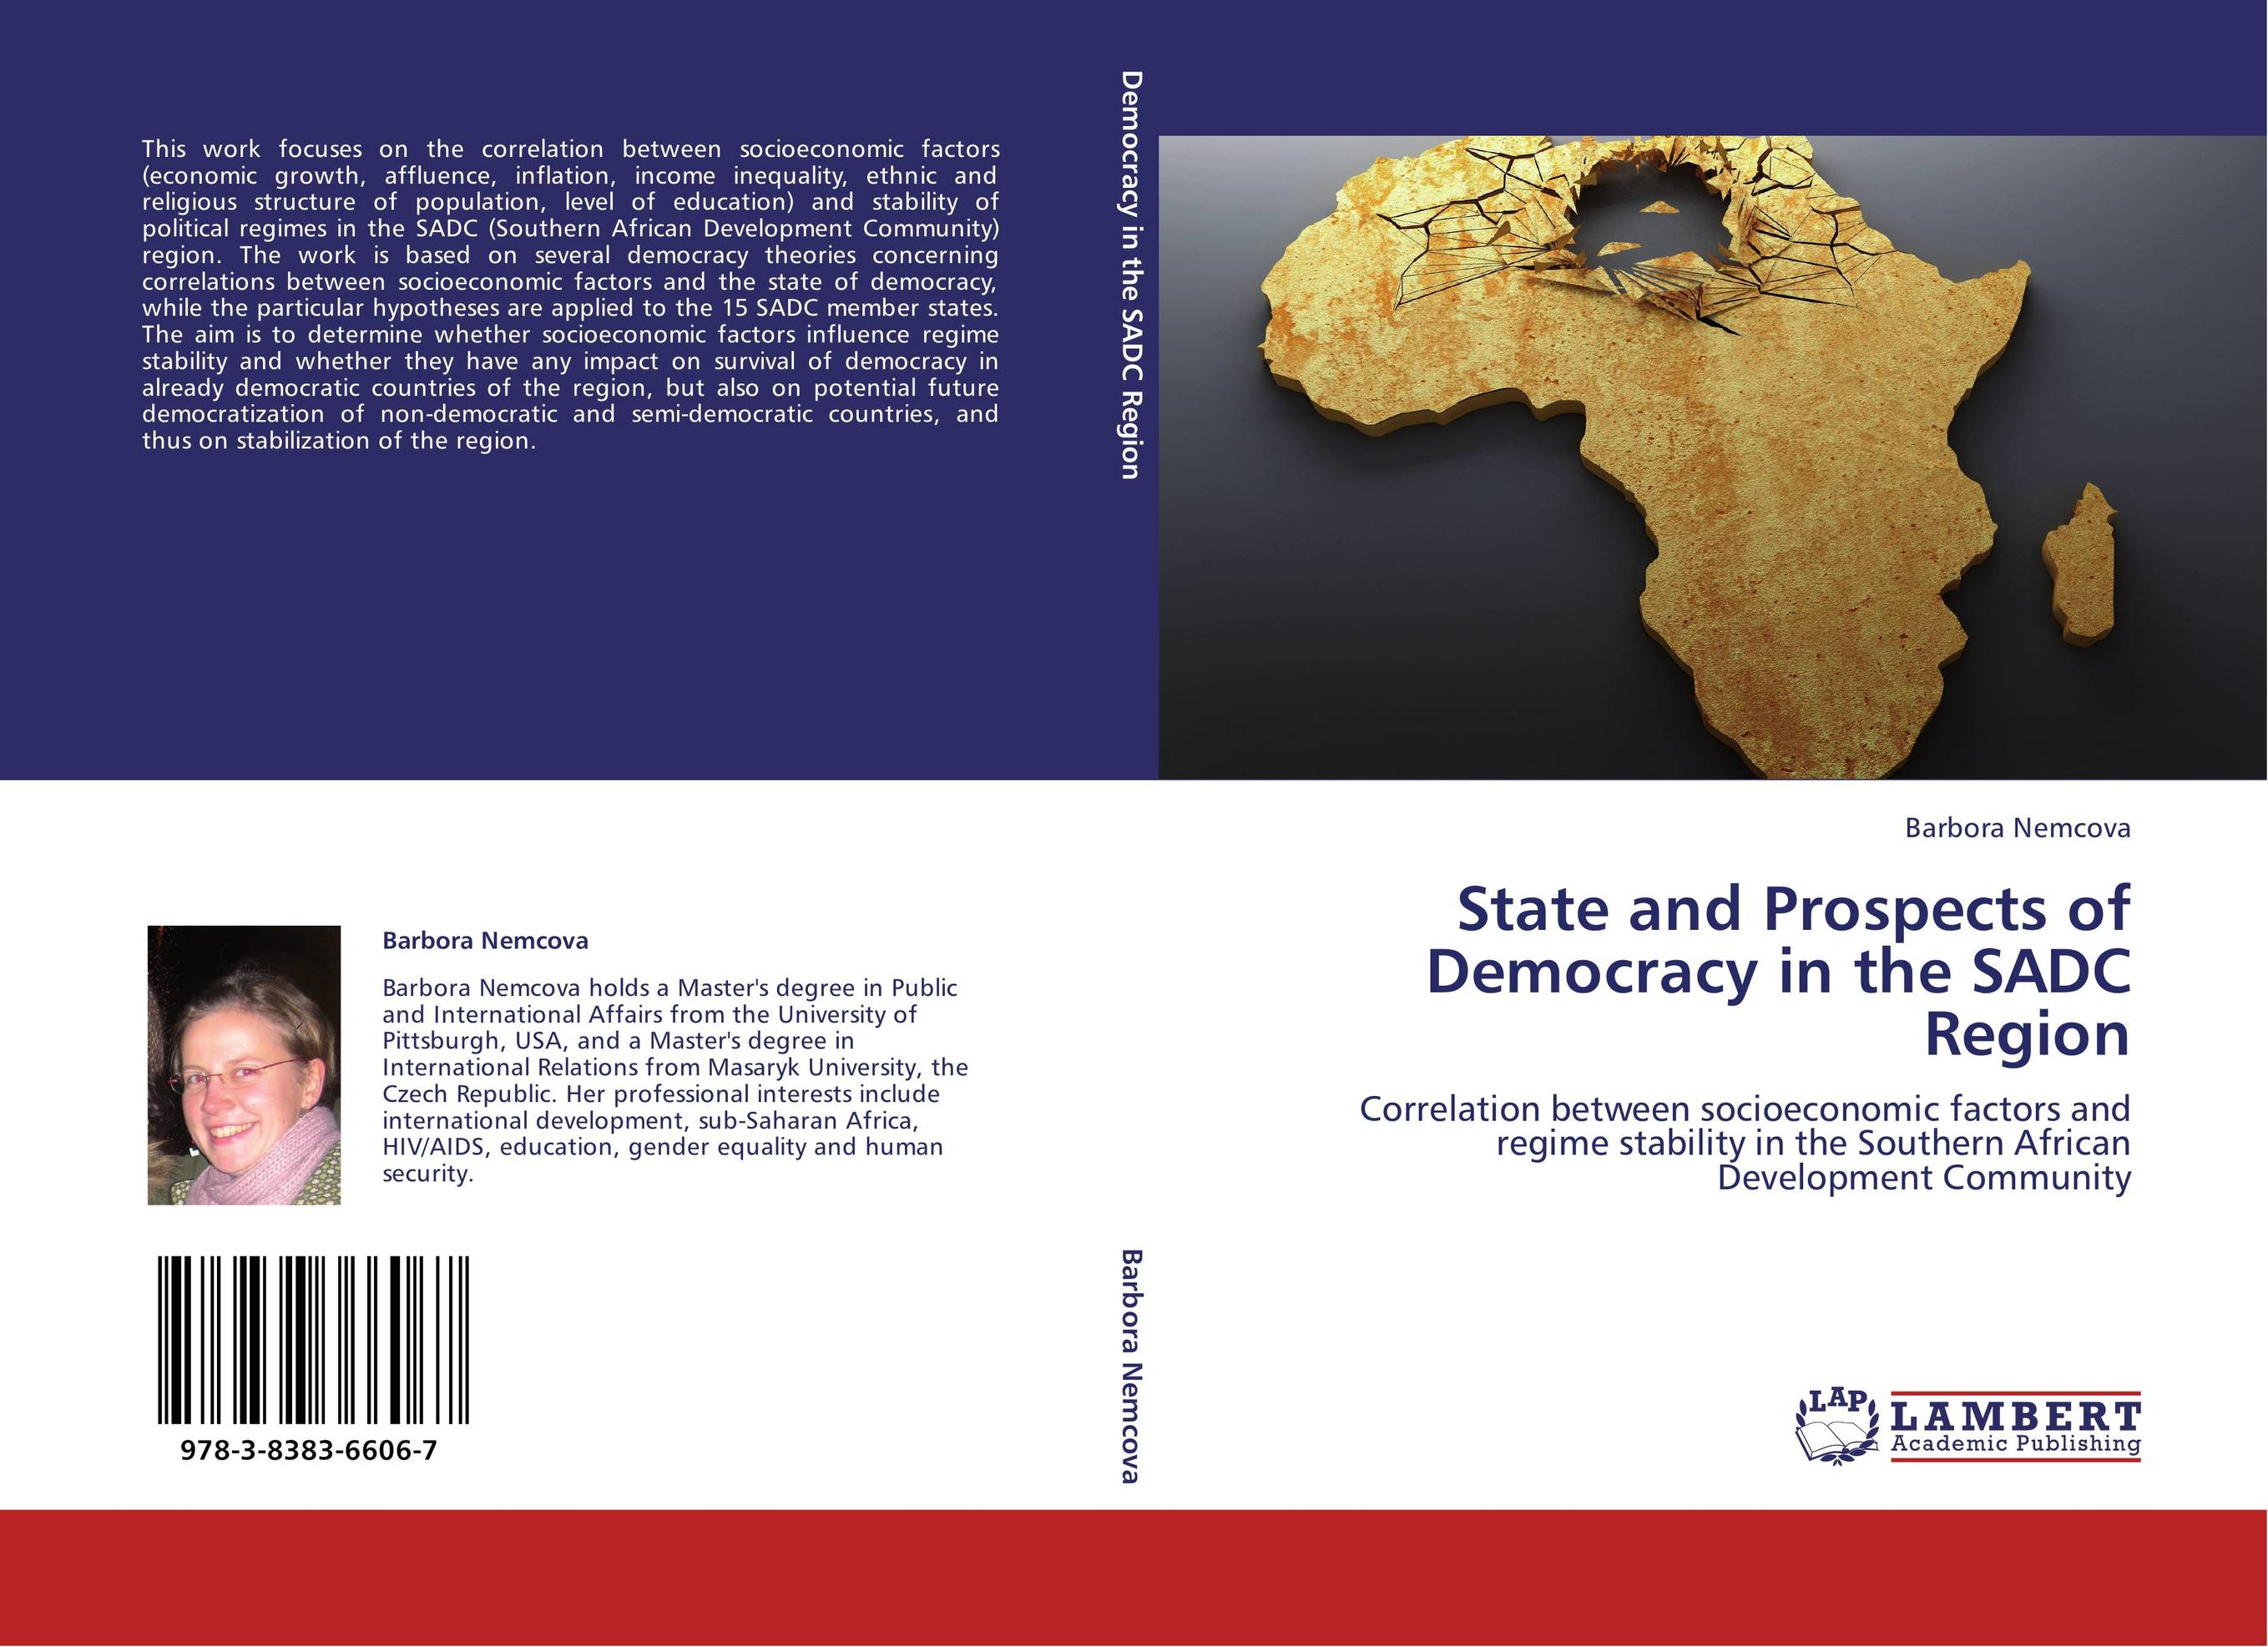 impact of democracy on economic stability 6 democracy's effect on economic growth 283 61 is there a net effect of democracy on economic growth         284 62 pooled cross section - time series and panel data analysis, short sample286.